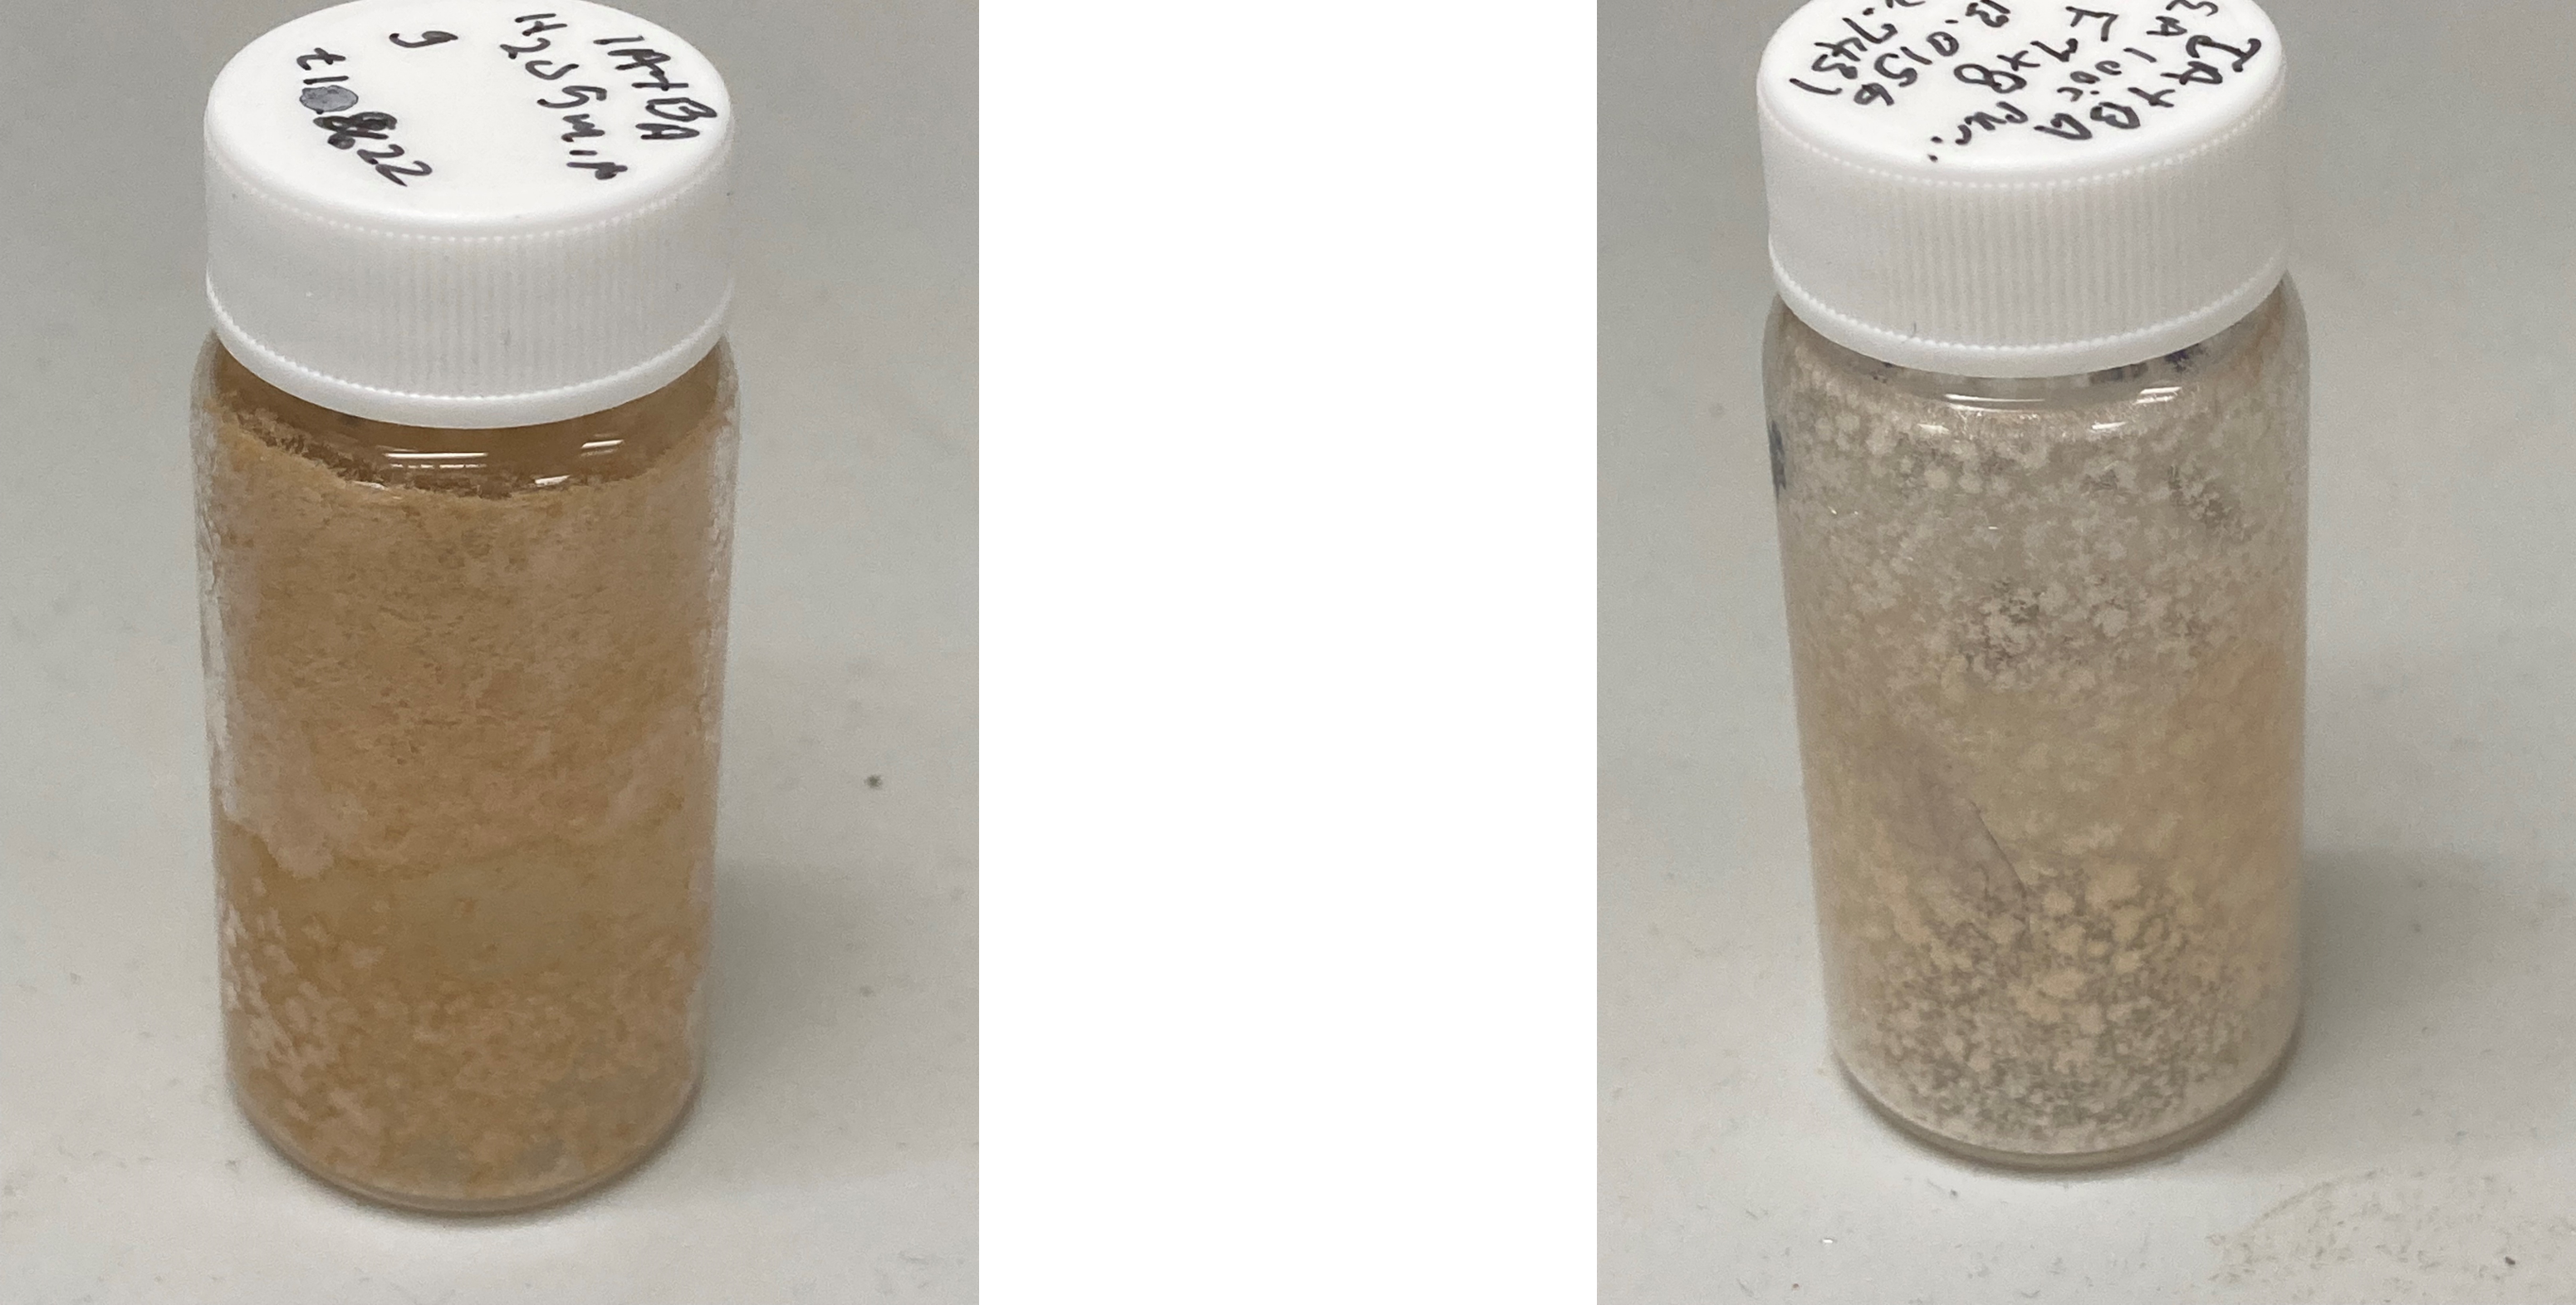 Orthogonal crude rxn mix before flash (L) and after RP flash